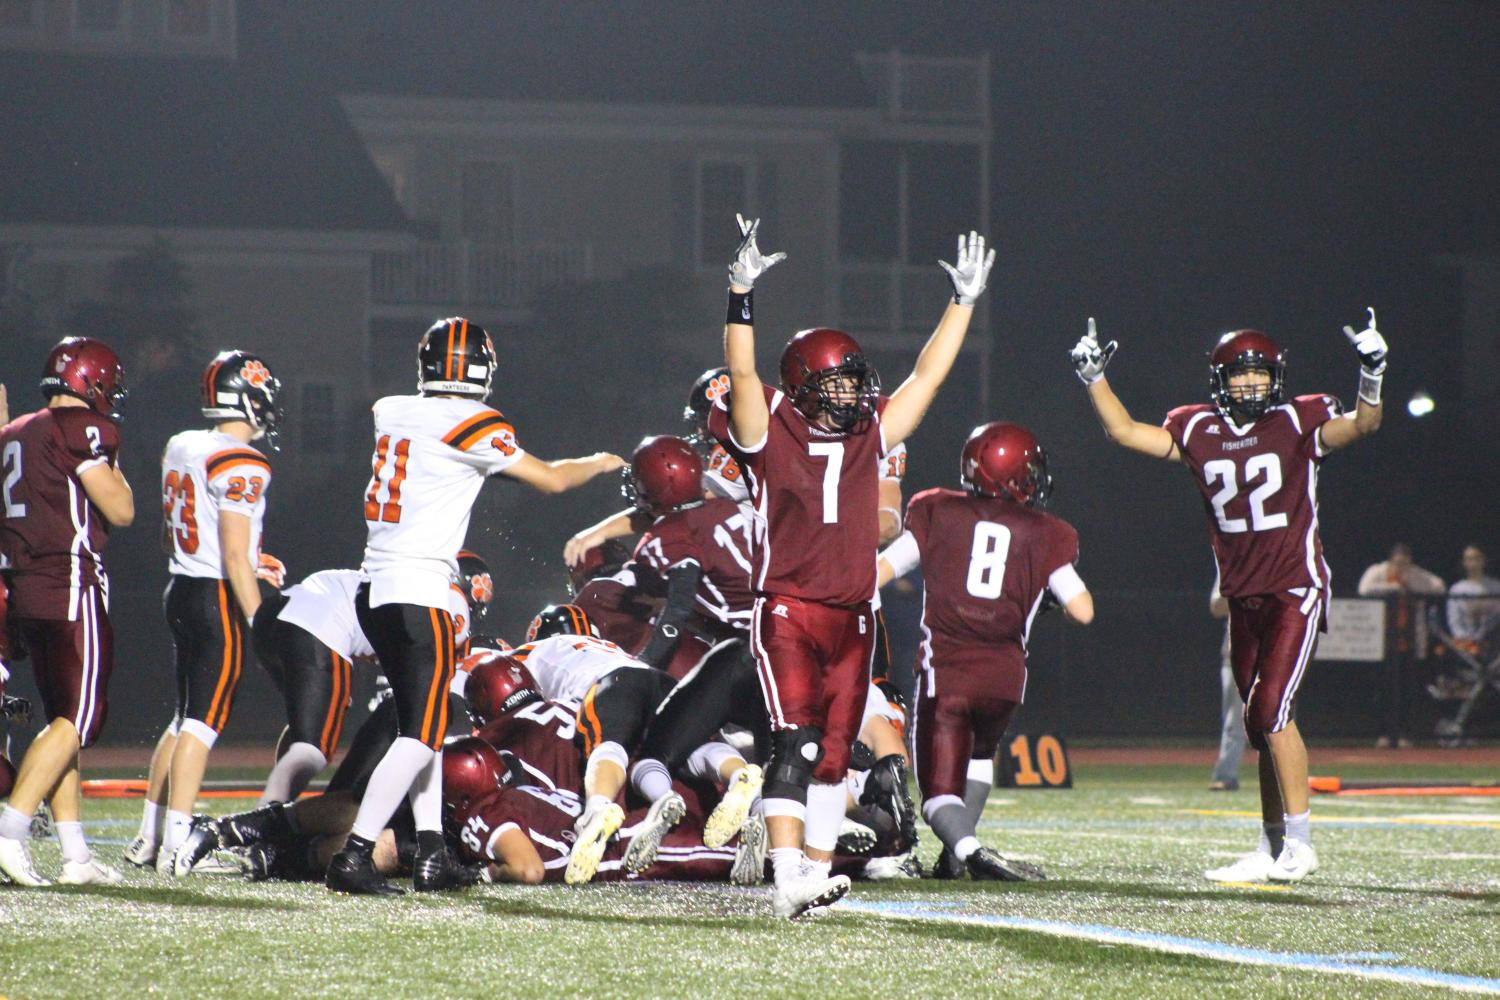 Cody+Burke+%287%29+and+Daylon+Lark+%2822%29+celebrate+what+they+think+is+a+touchdown+run+in+by+Gloucester